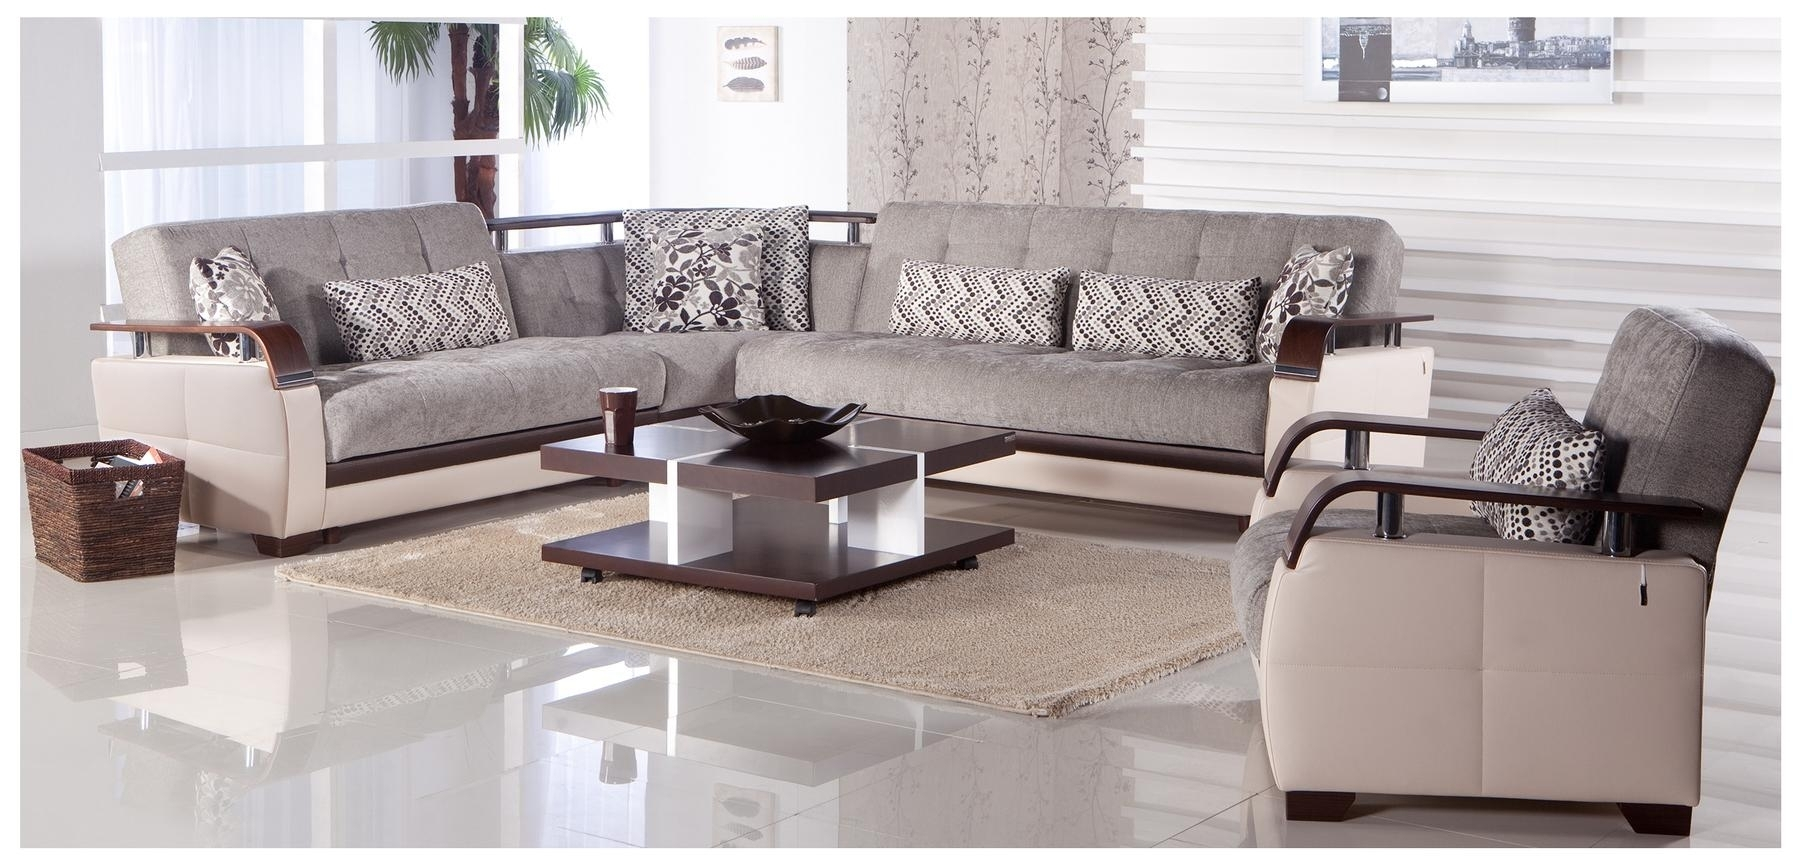 20+ Choices Of Houston Sectional Sofa | Sofa Ideas Intended For Sectional Sofas In Houston Tx (Photo 10 of 10)